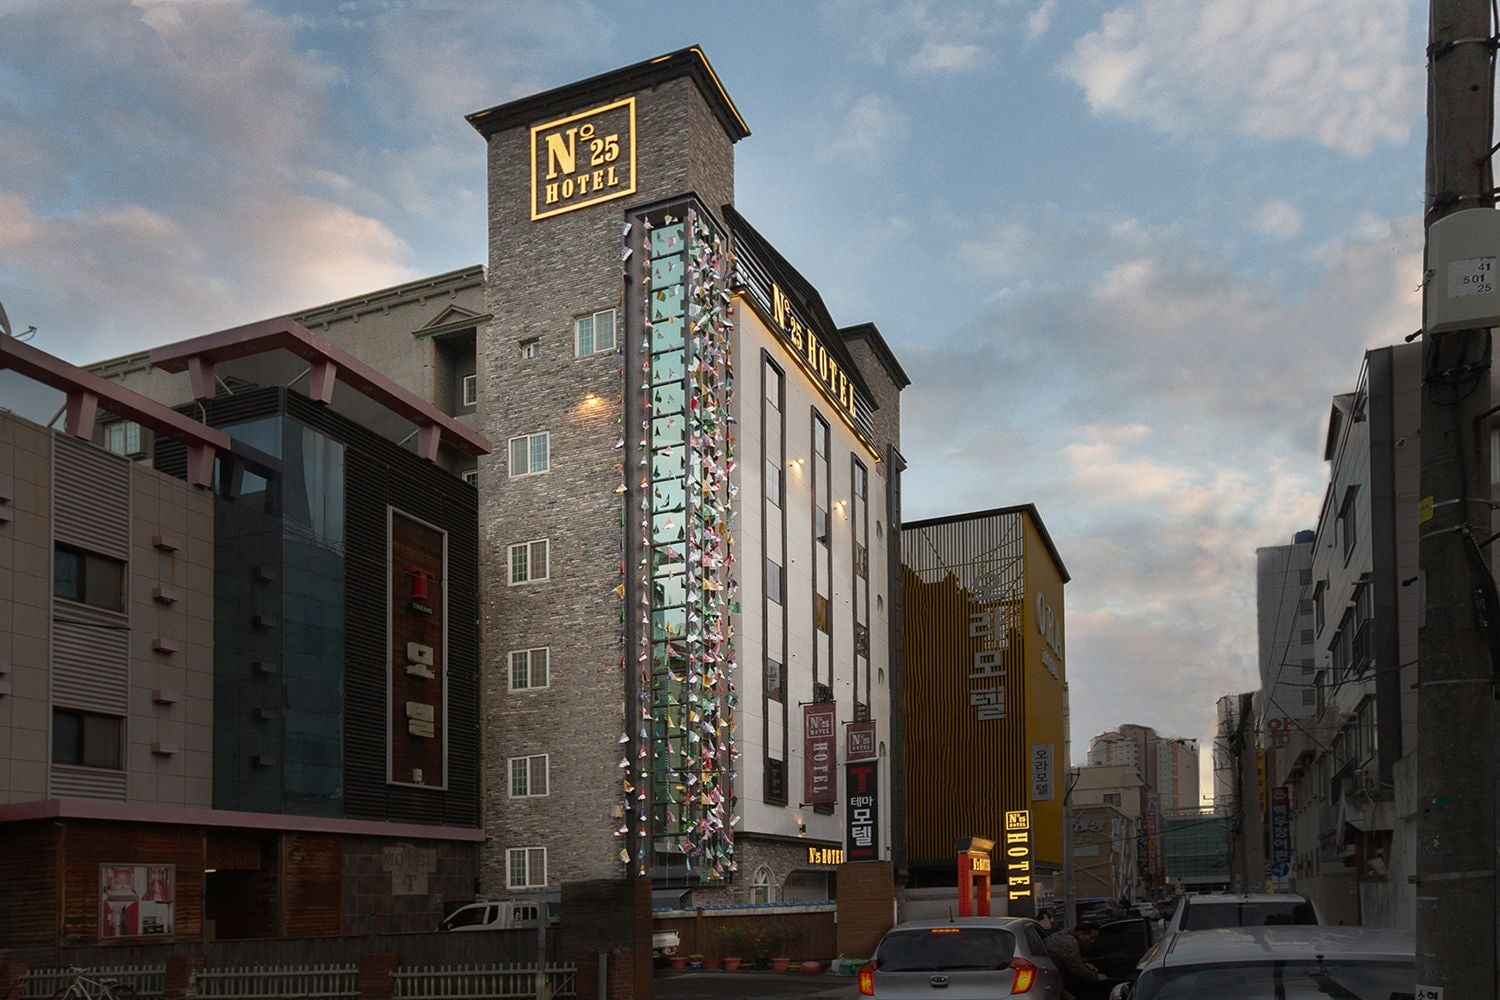 No25 HOTEL - Ulsan City Hall, Jung